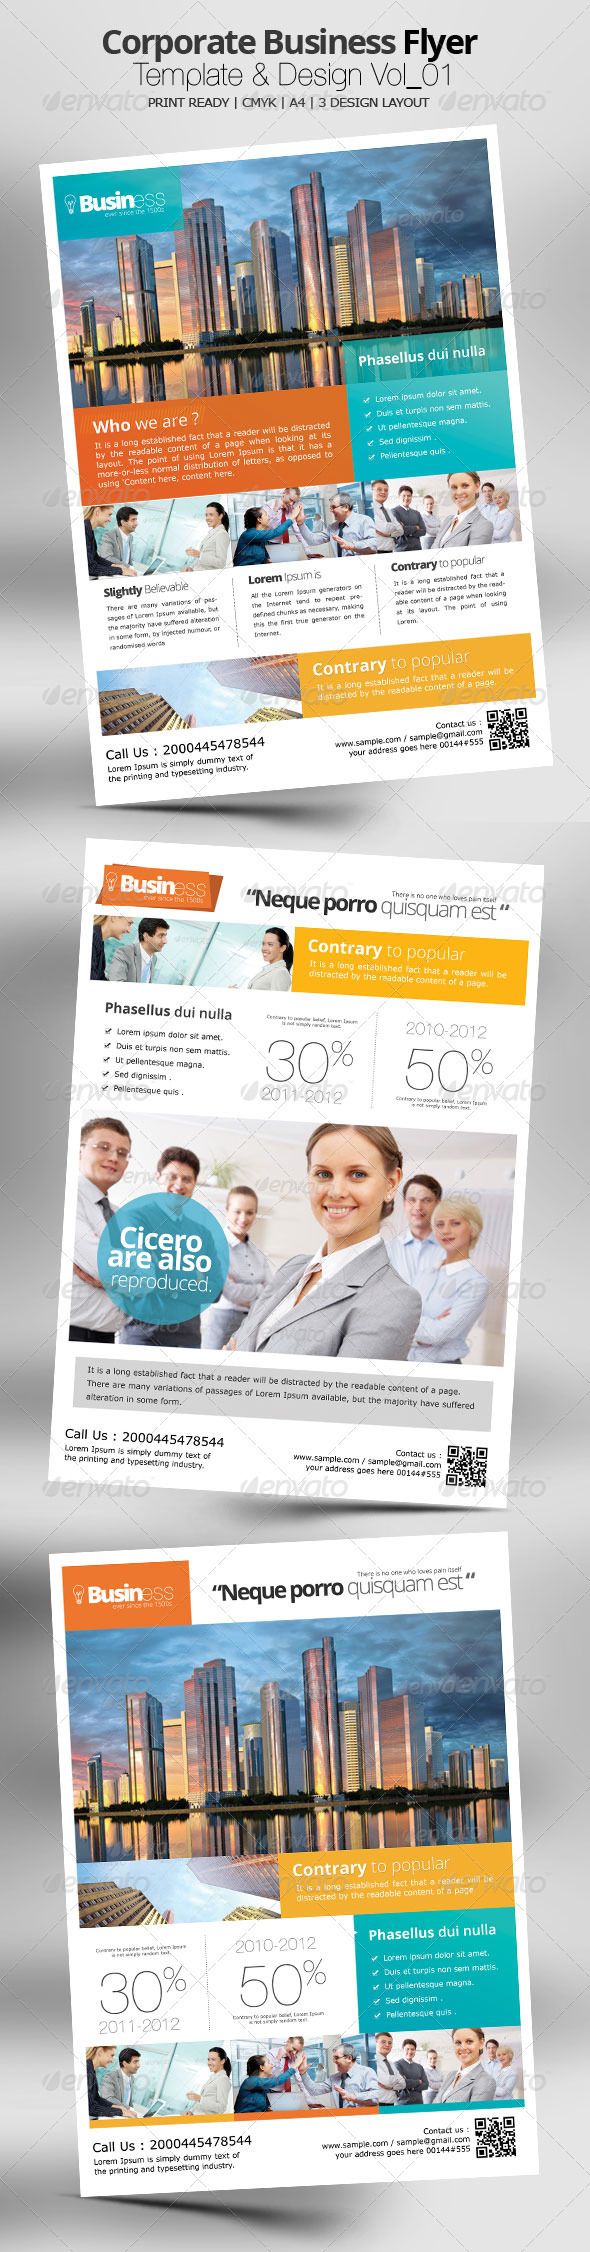 GraphicRiver Corporate Business Flyer Template & Design Vol 01 3763728